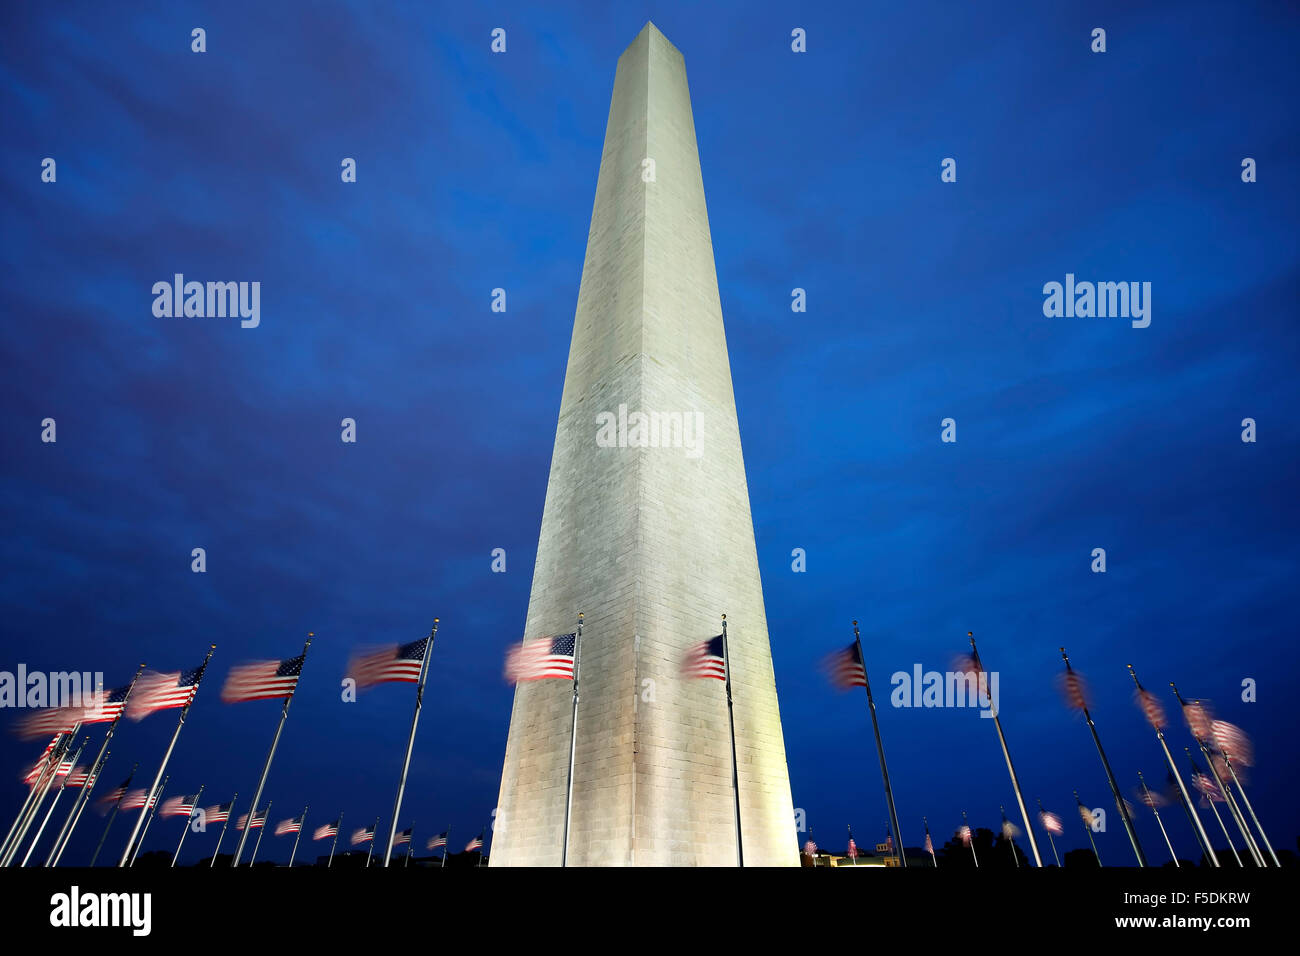 Washington Memorial et des drapeaux américains, Washington, District de Columbia USA Photo Stock